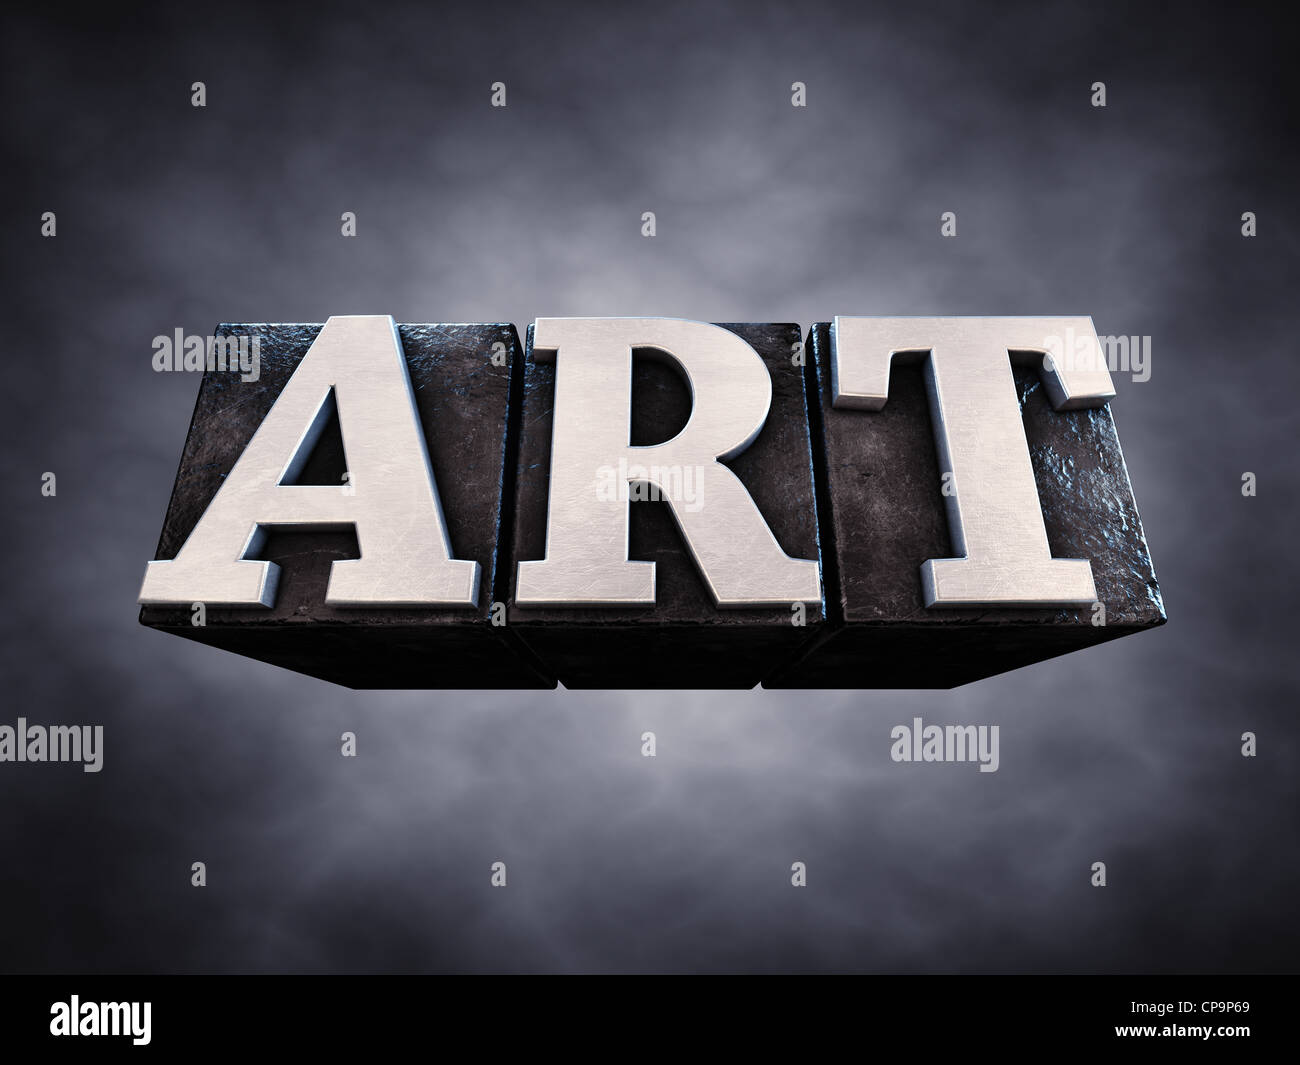 , L'art de composition typographique sur fond sombre, 3d illustration Photo Stock